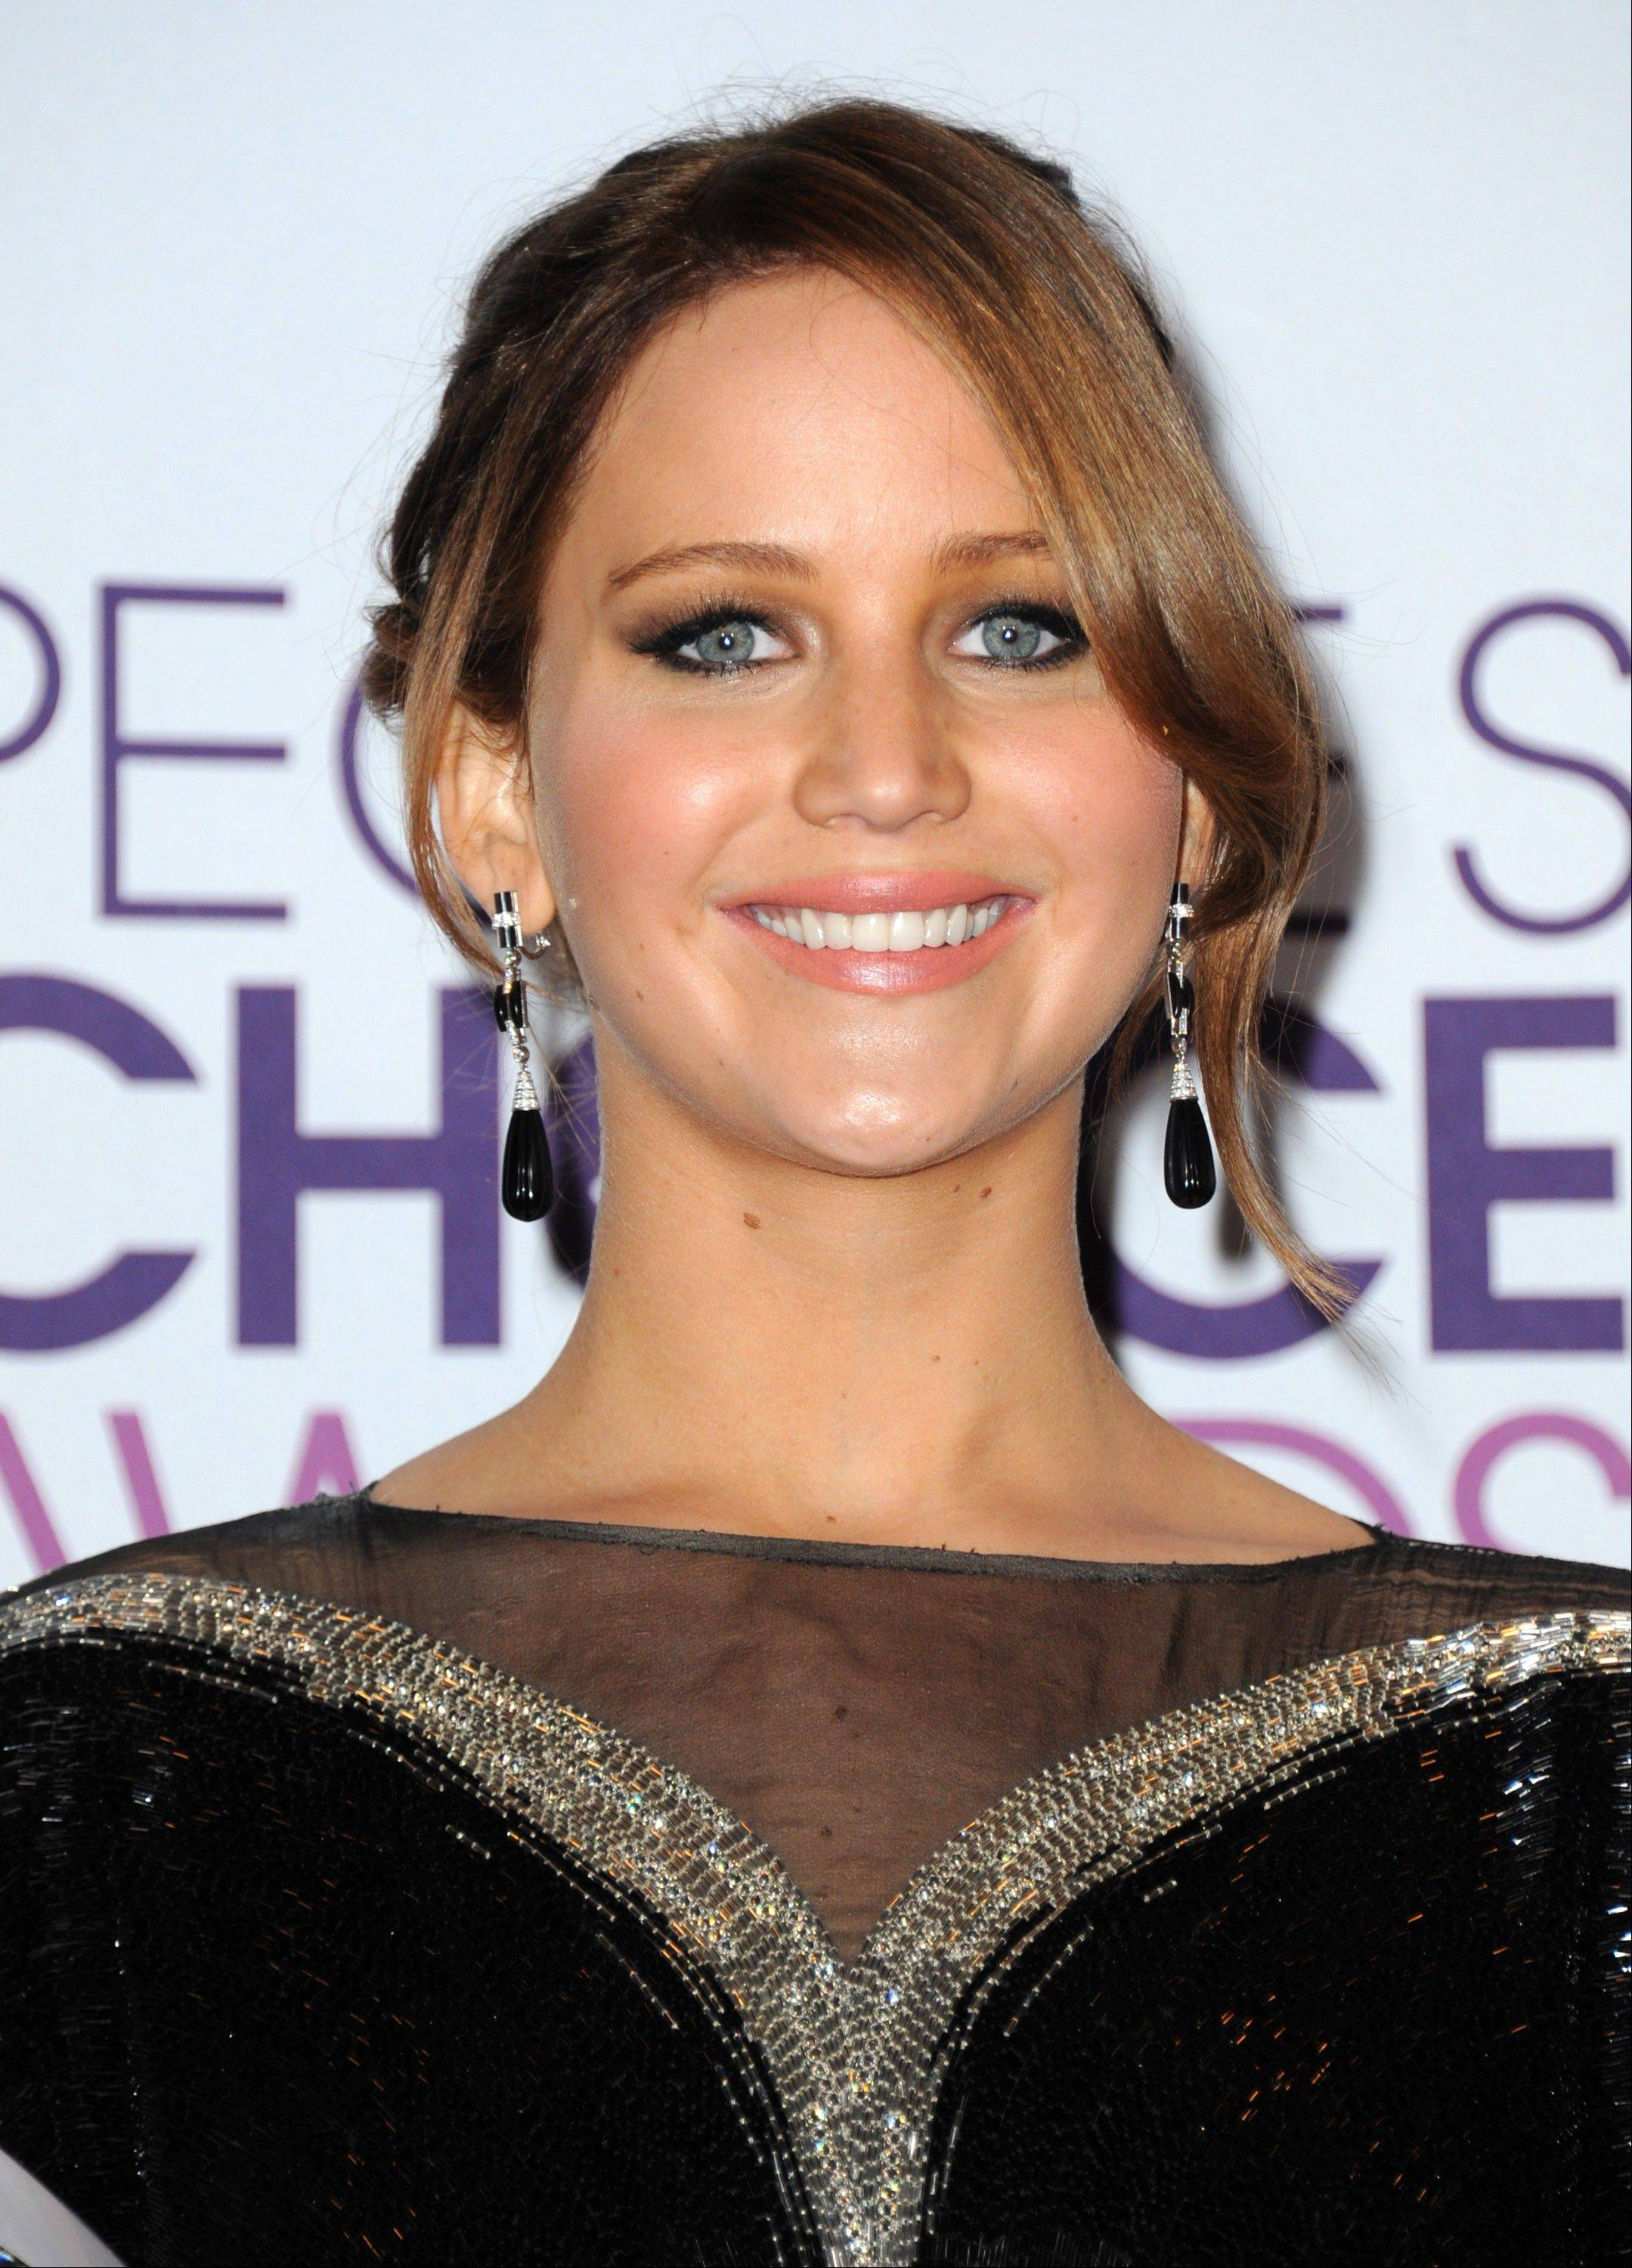 Jennifer Lawrence, winner of the award for favorite movie actress, poses backstage at the People's Choice Awards at the Nokia Theatre on Wednesday Jan. 9, 2013, in Los Angeles.